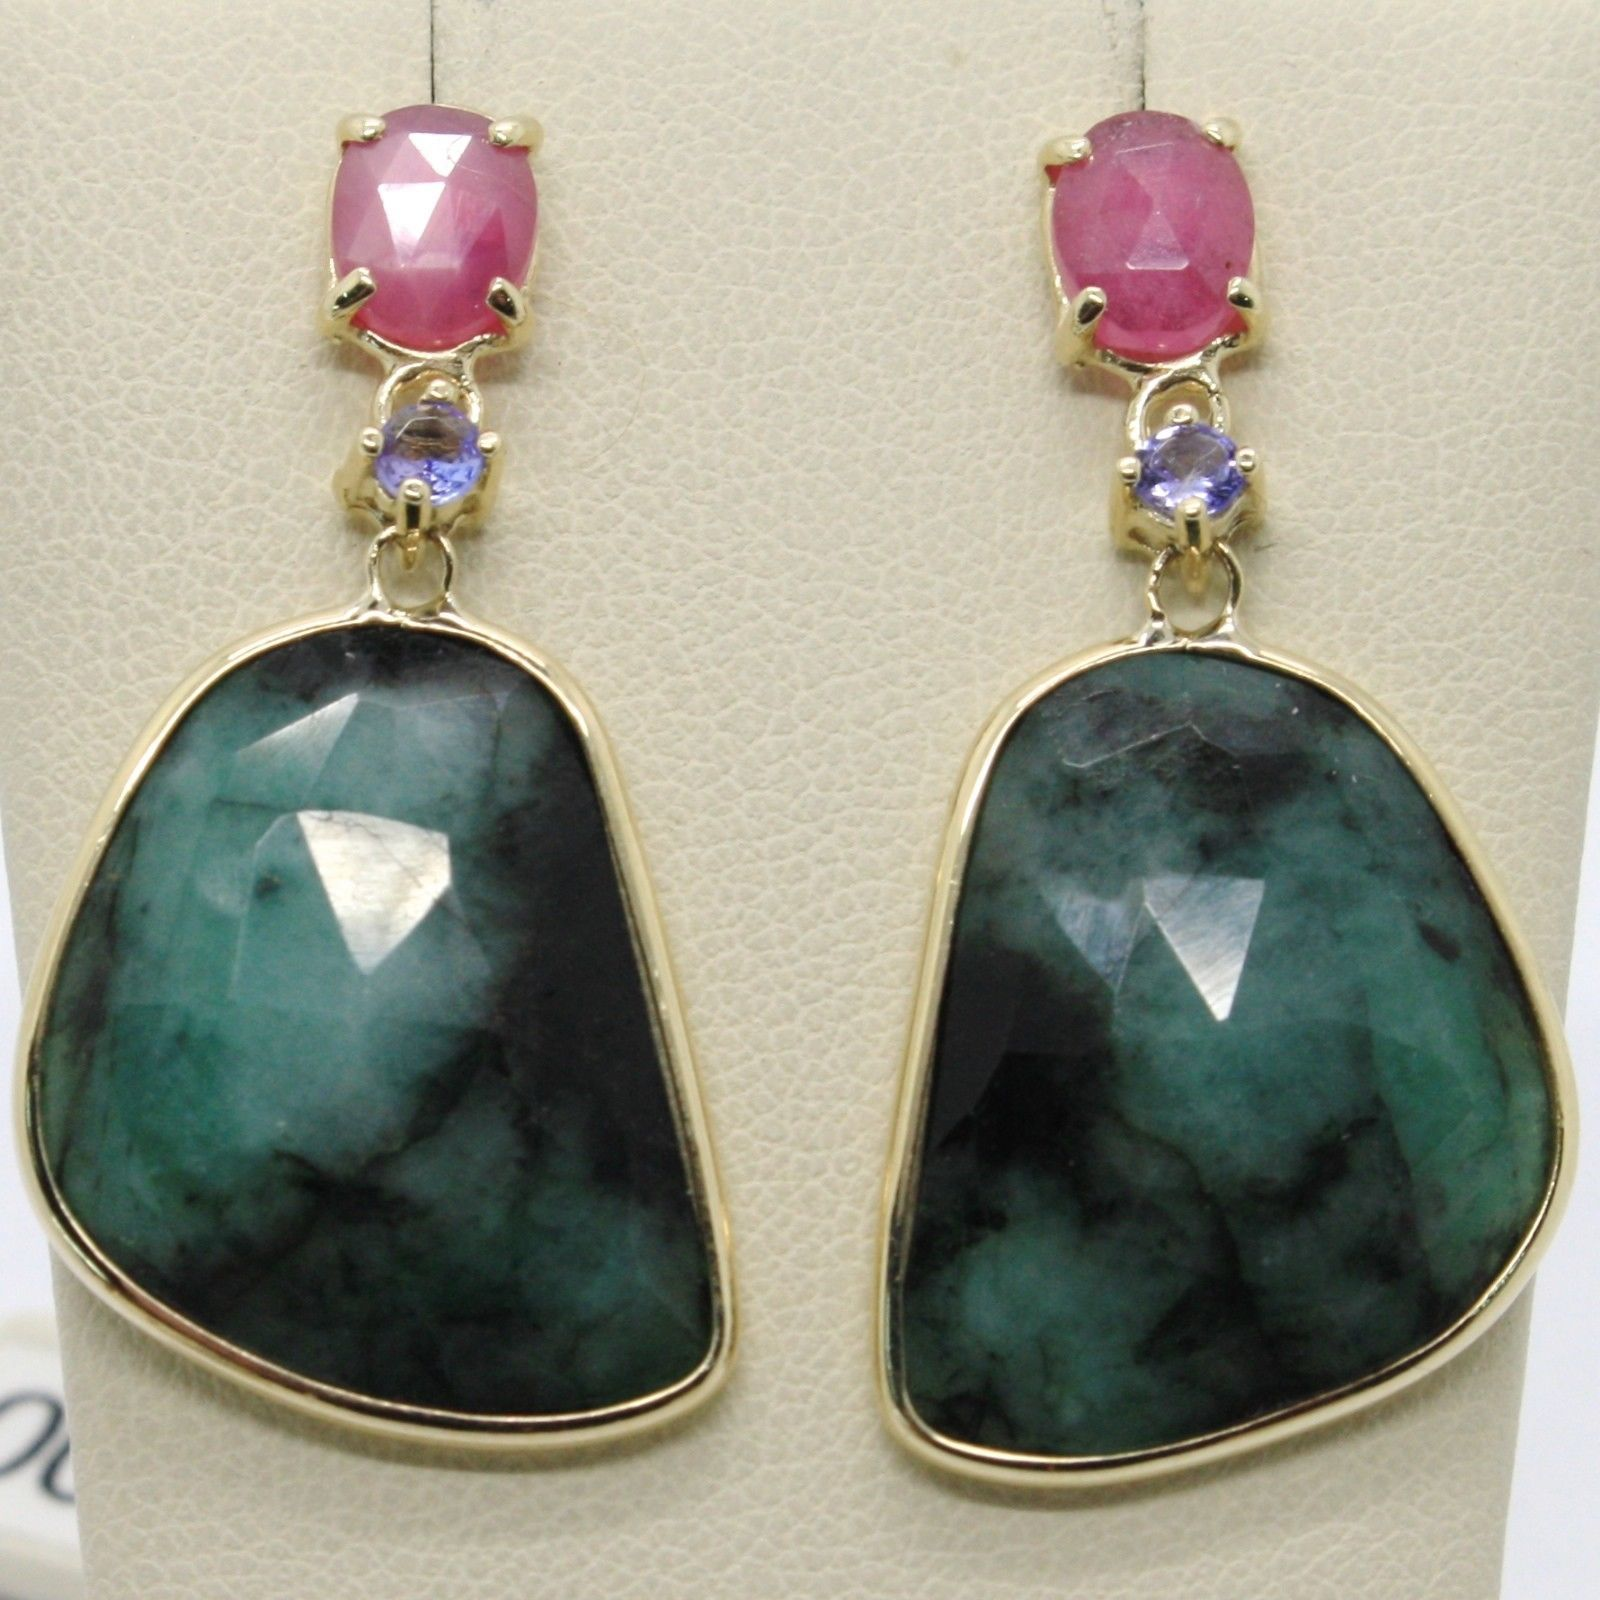 9K YELLOW GOLD PENDANT EARRINGS, BLUE & OVAL PINK SAPPHIRE, DROP GREEN EMERALD